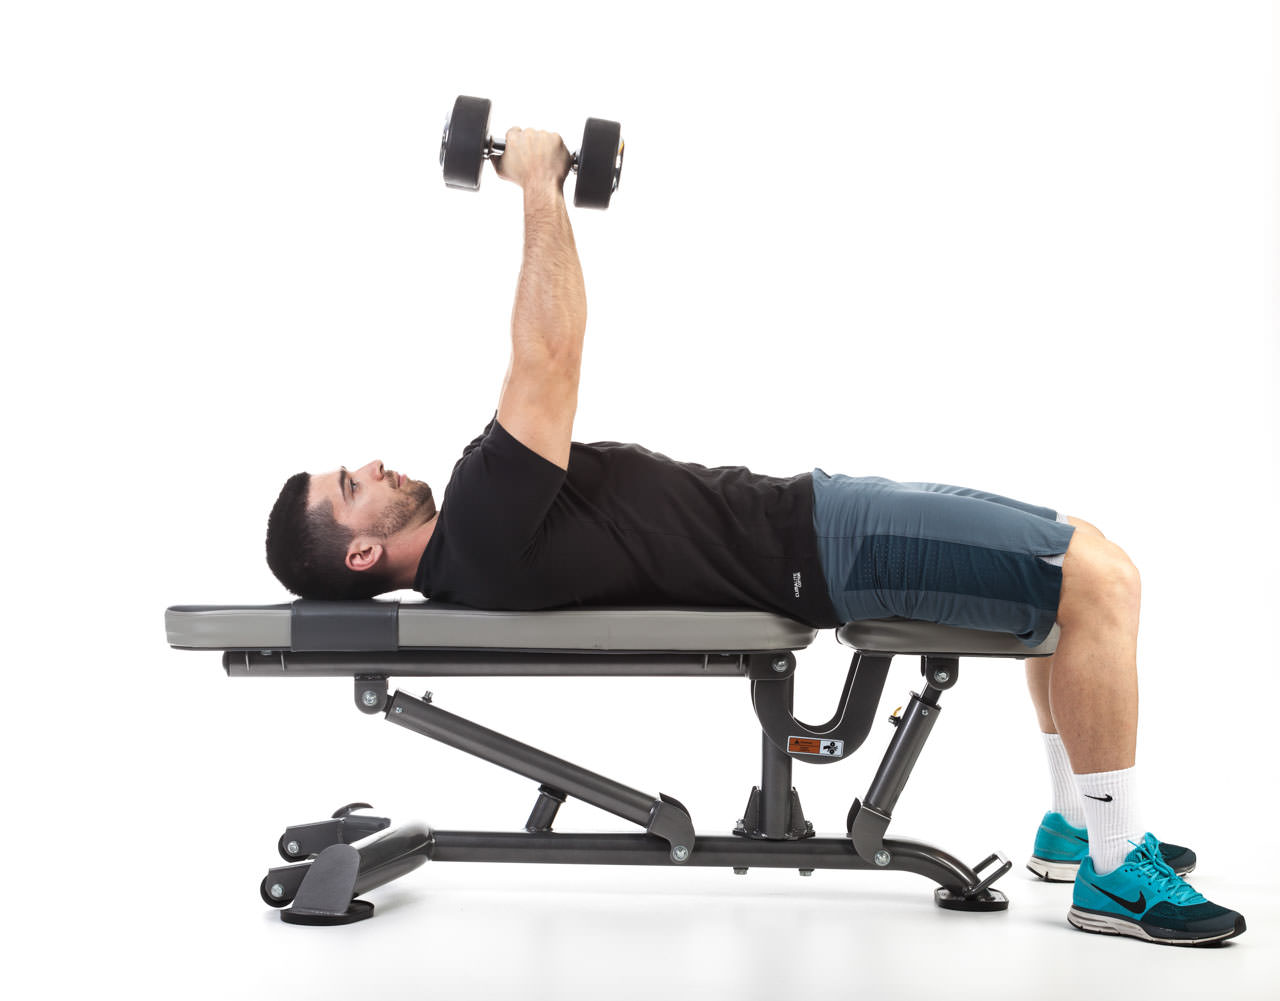 Dumbbell Bench Press with Rotation frame #2